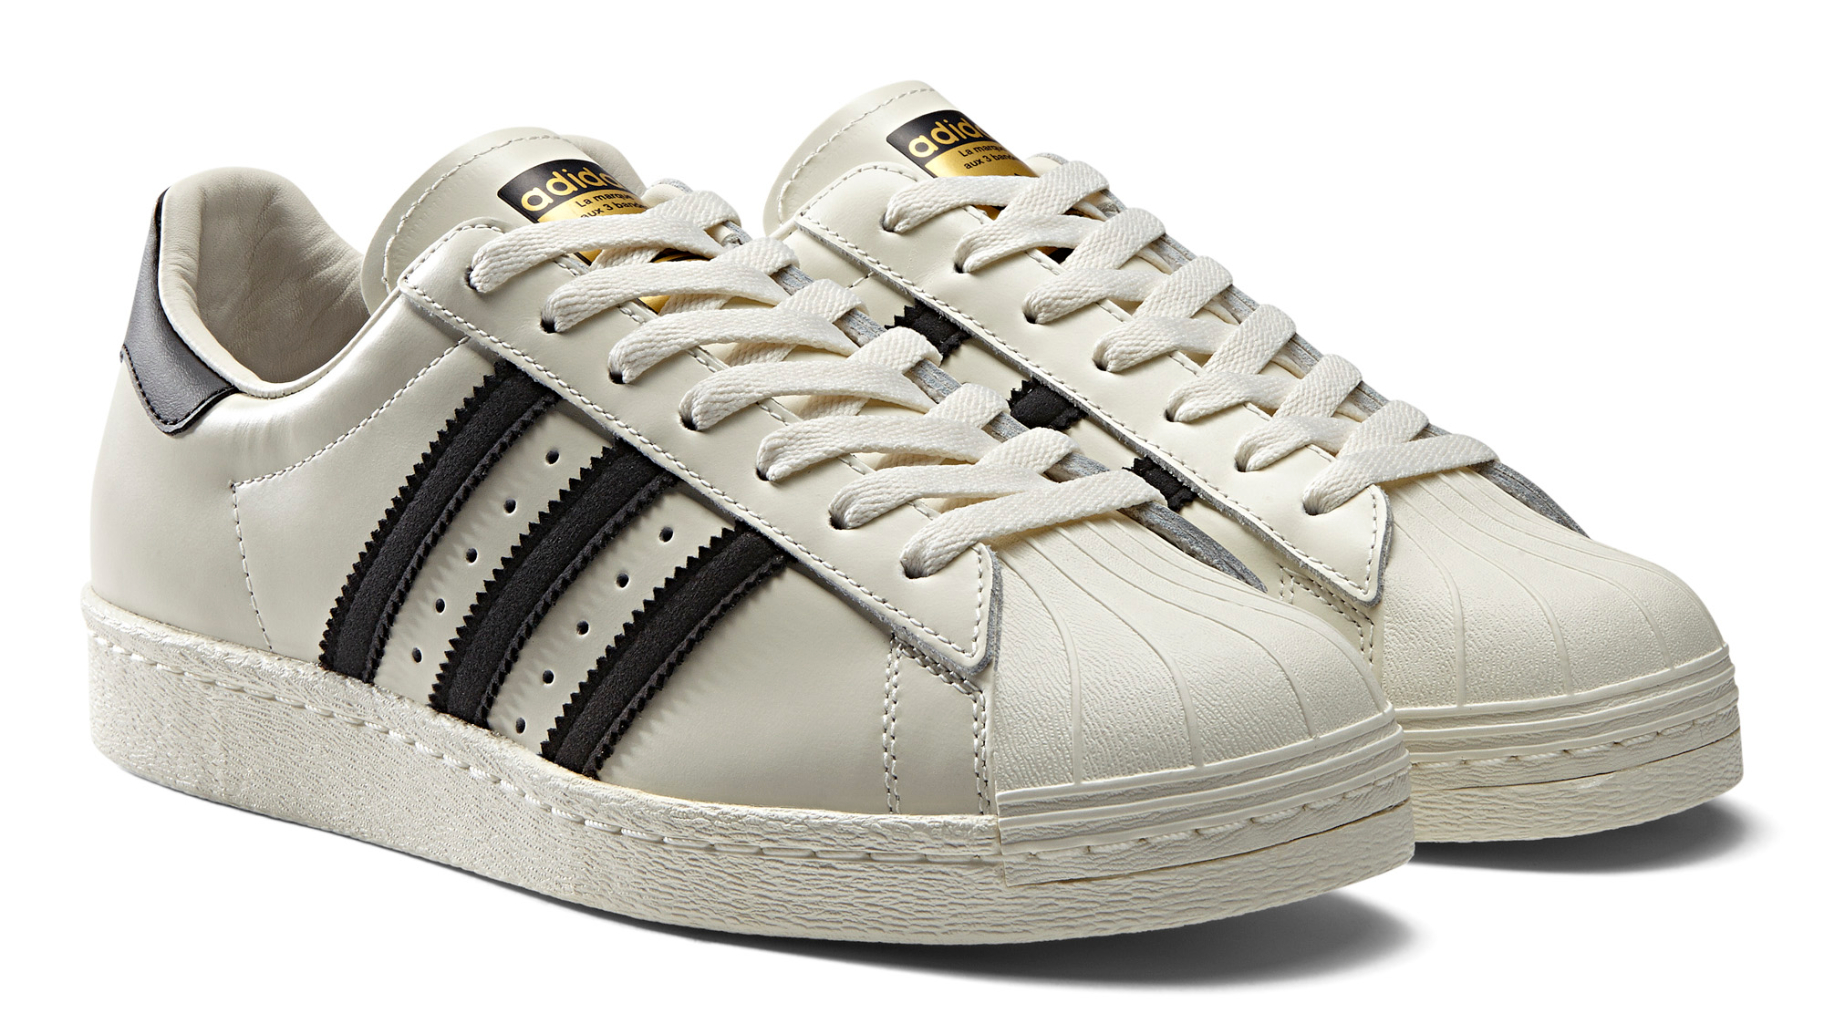 adidas superstar 80s deluxe